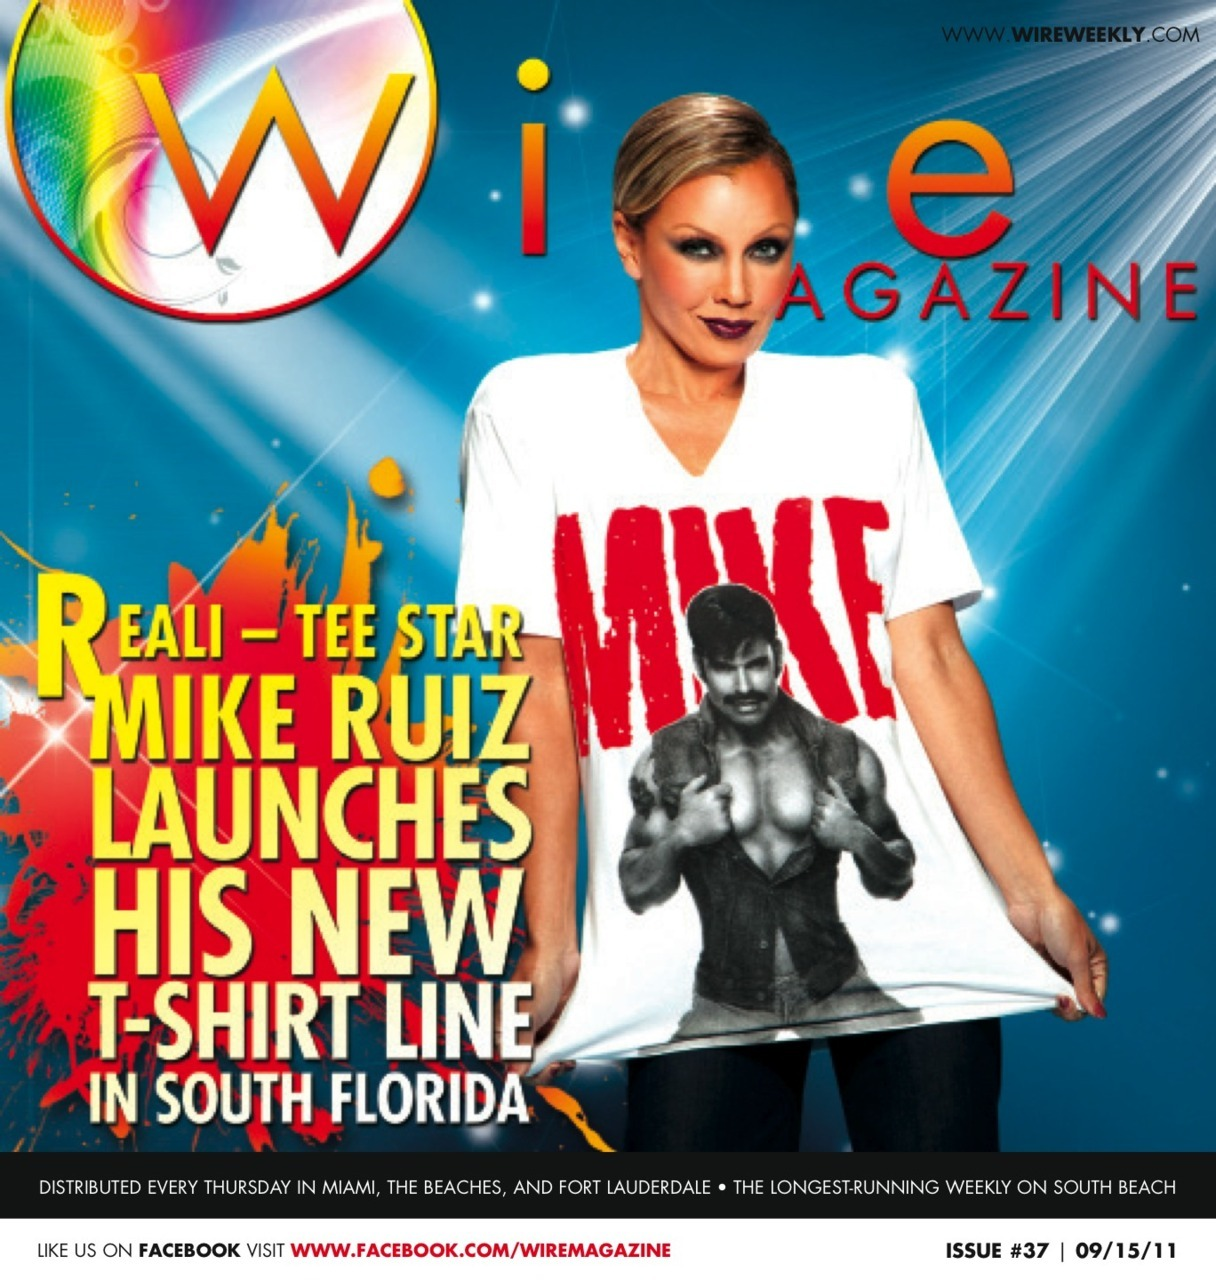 Wire Magazine Issue 37: Mike Ruiz Launches New T-Shirt Line In South Florida. When it comes to celebrities and fabulous soirees no one throws a party like South Florida. South Florida welcomes celebrity photographer and A-List reality star, Mike Ruiz to its sandy shores. Mike Ruiz is a lumber-jack of all trades.  He's been a high fashion model, celebrity photographer, reality TV star, book author, and now, designer.  Yes, you heard that right, a designer.  Mike recently launched his new tee shirt line called The Mike Ruiz Collection, of course.  The man behind incredible images of stars like Kim Kardashian, Lindsay Lohan, and Ricky Martin comes to Living Room in Fort Lauderdale to promote his new tee shirt line by signing his latest creations. We caught up with Mike to get the inside scoop on his new line, experiences as a photographer, and his future.  ALSO INSIDE: Wire Magazine Publisher's memoir of 9/11 Read about New LIVE performances coming to Palace Wire Magazine Photo Albums of Last Week's Events & Parties Wire Magazine This Week: The weekly full listing of upcoming events and parties